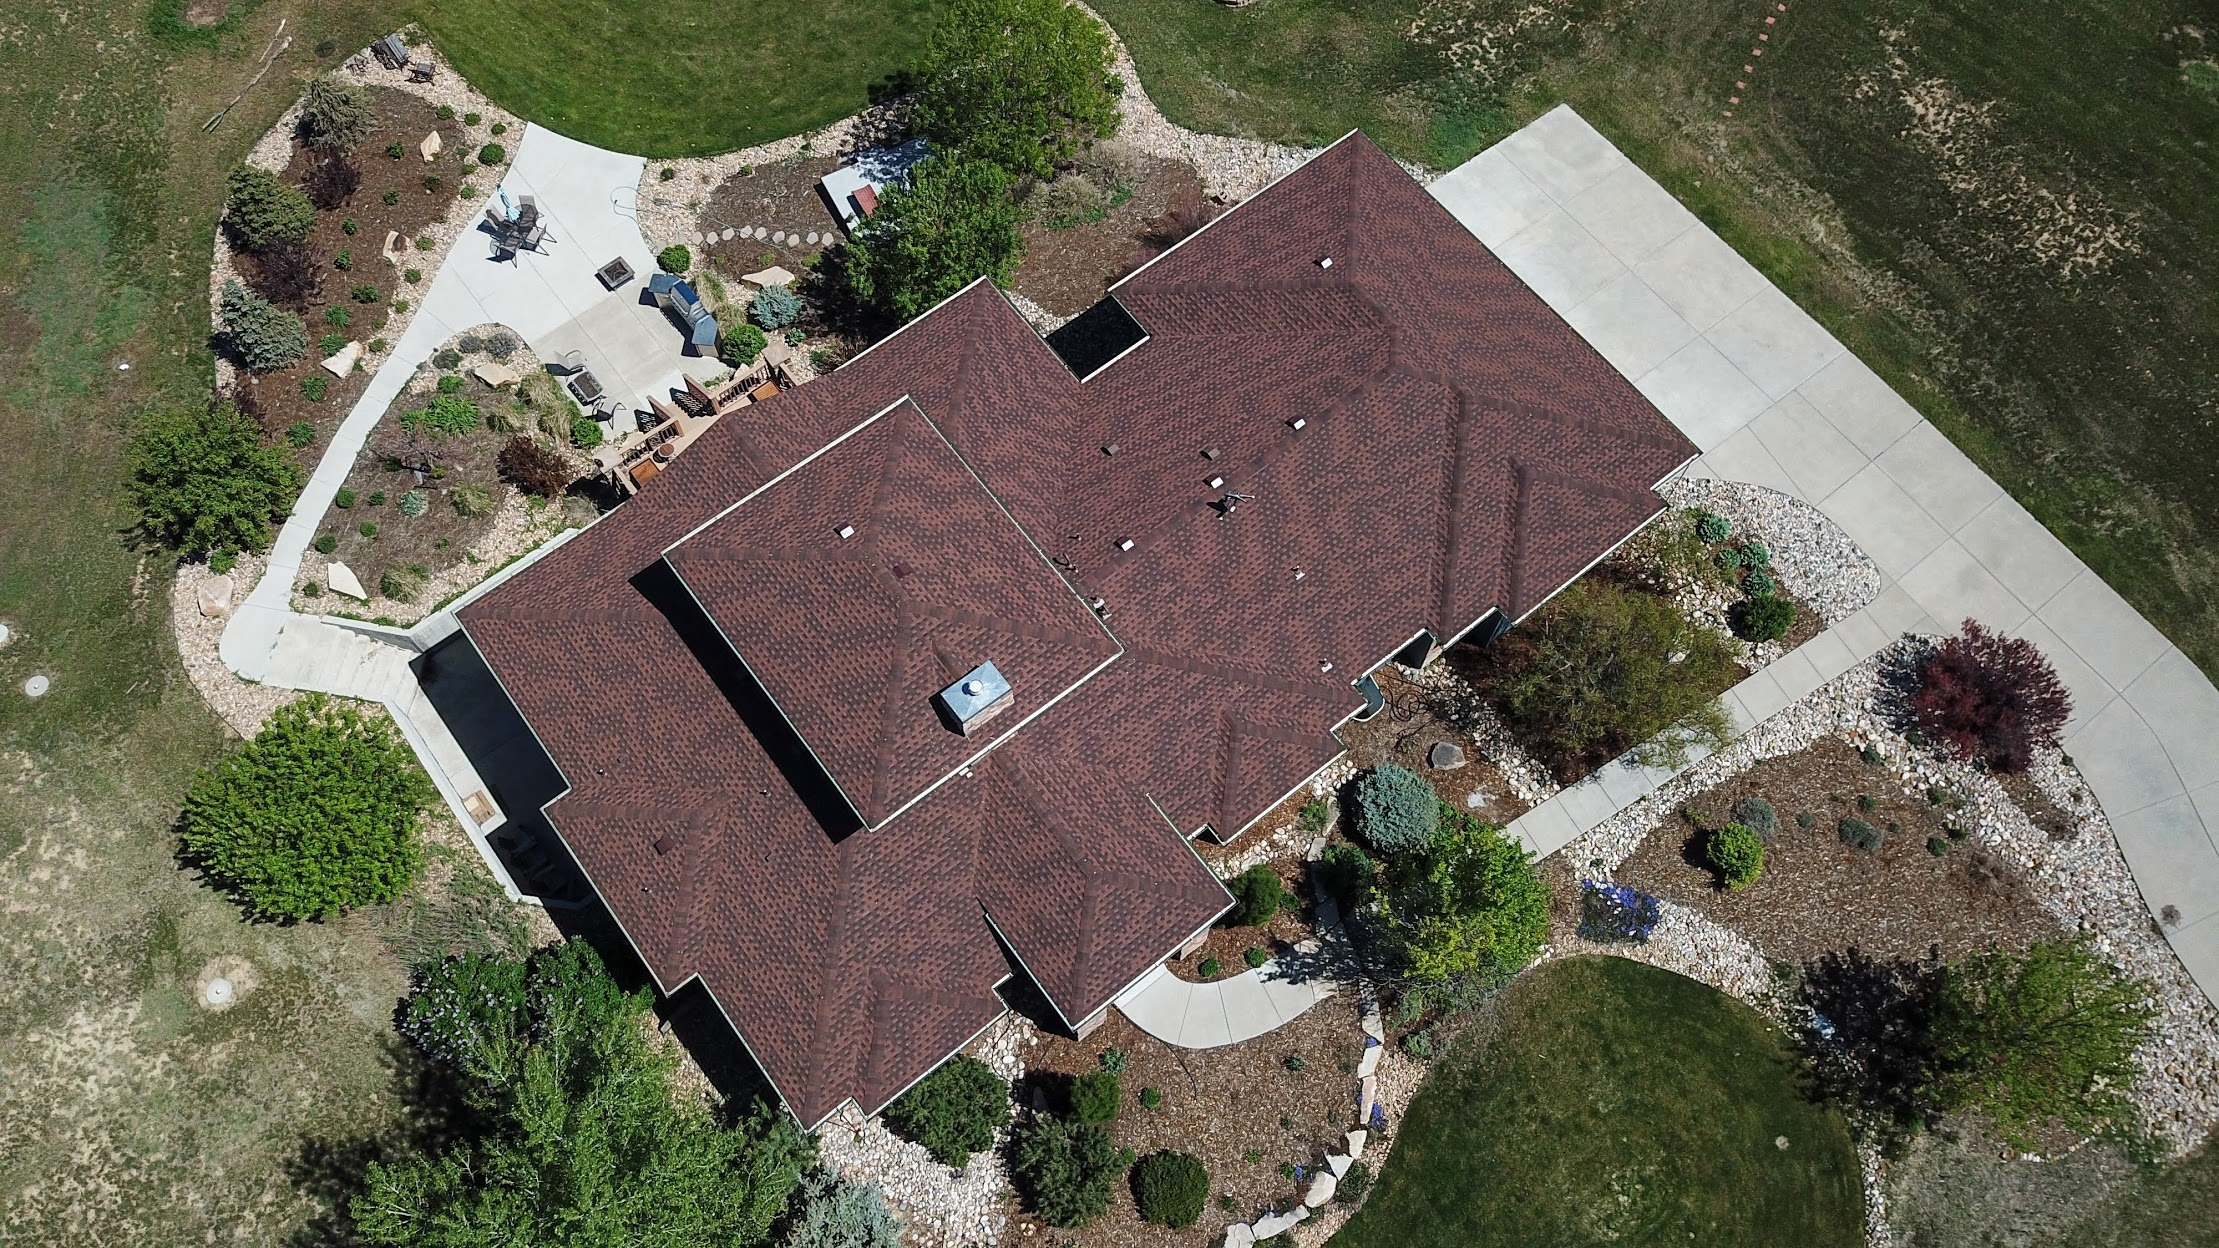 Installed a Residential Reroof with Natural Wood Class IV Shingles and Gutters.